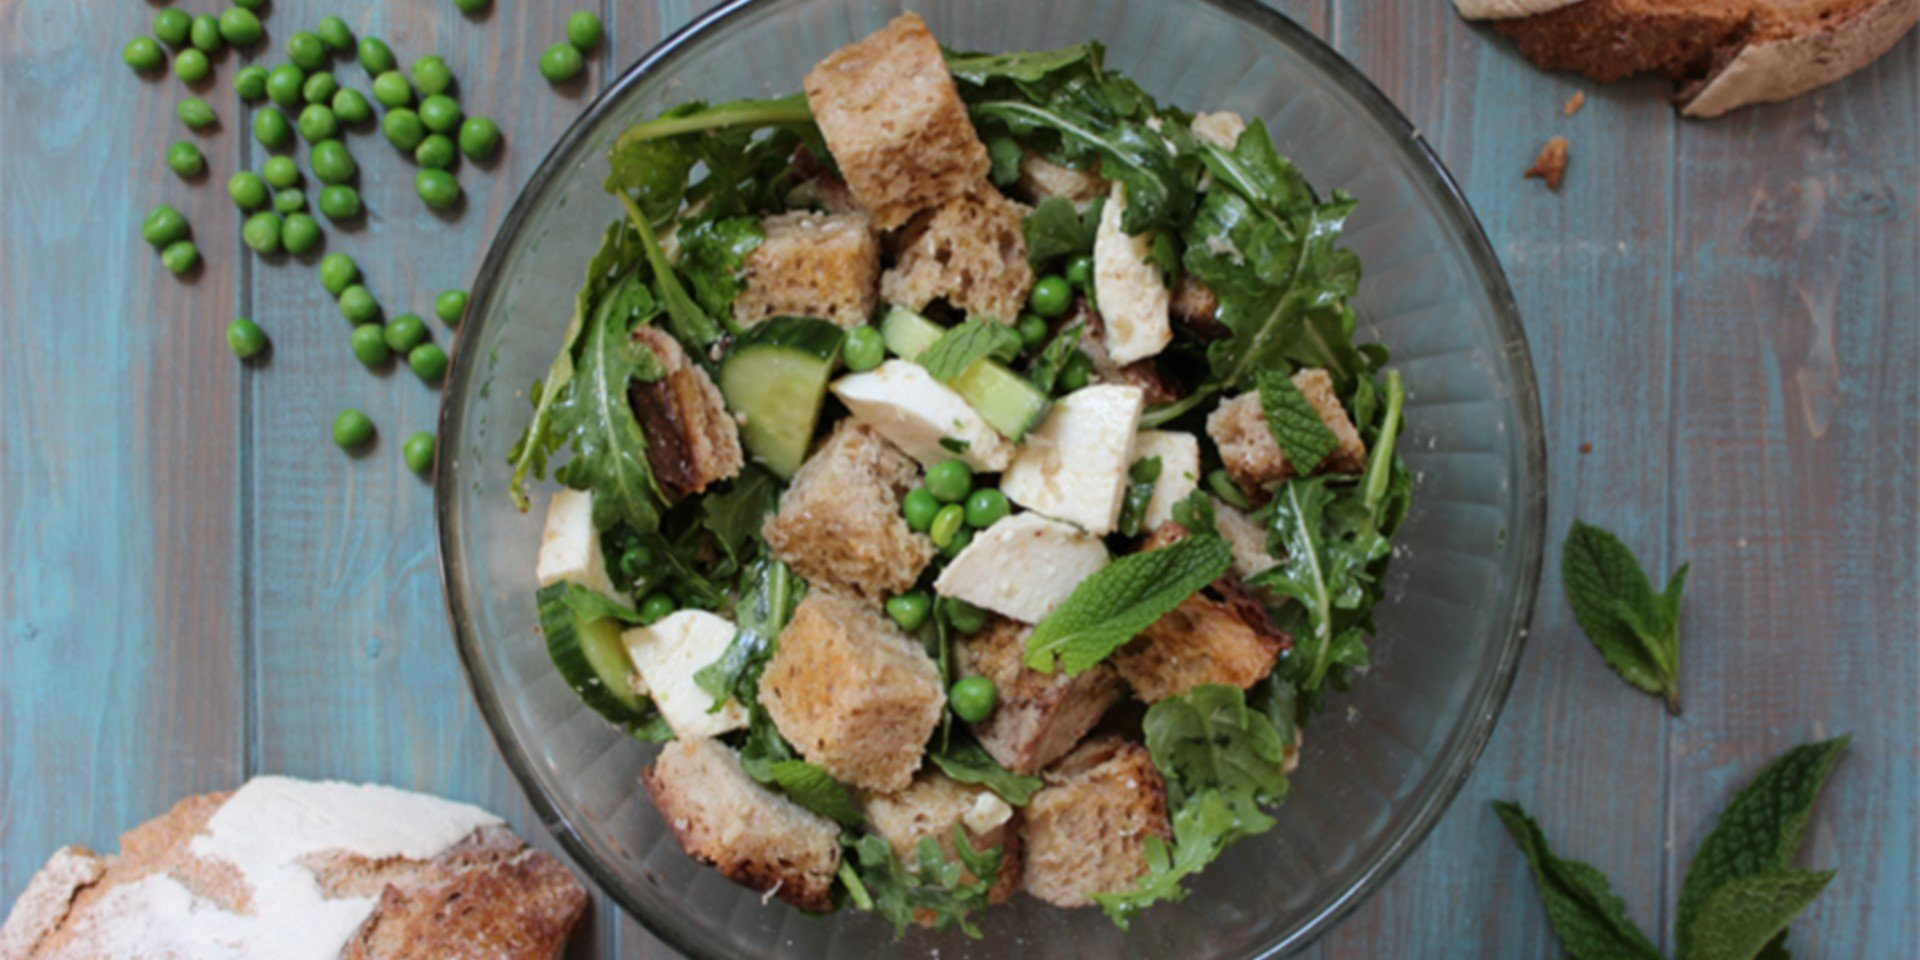 Spring Pea Panzanella Salad Le Pain Quotidien Cookbook by Alain Coumont